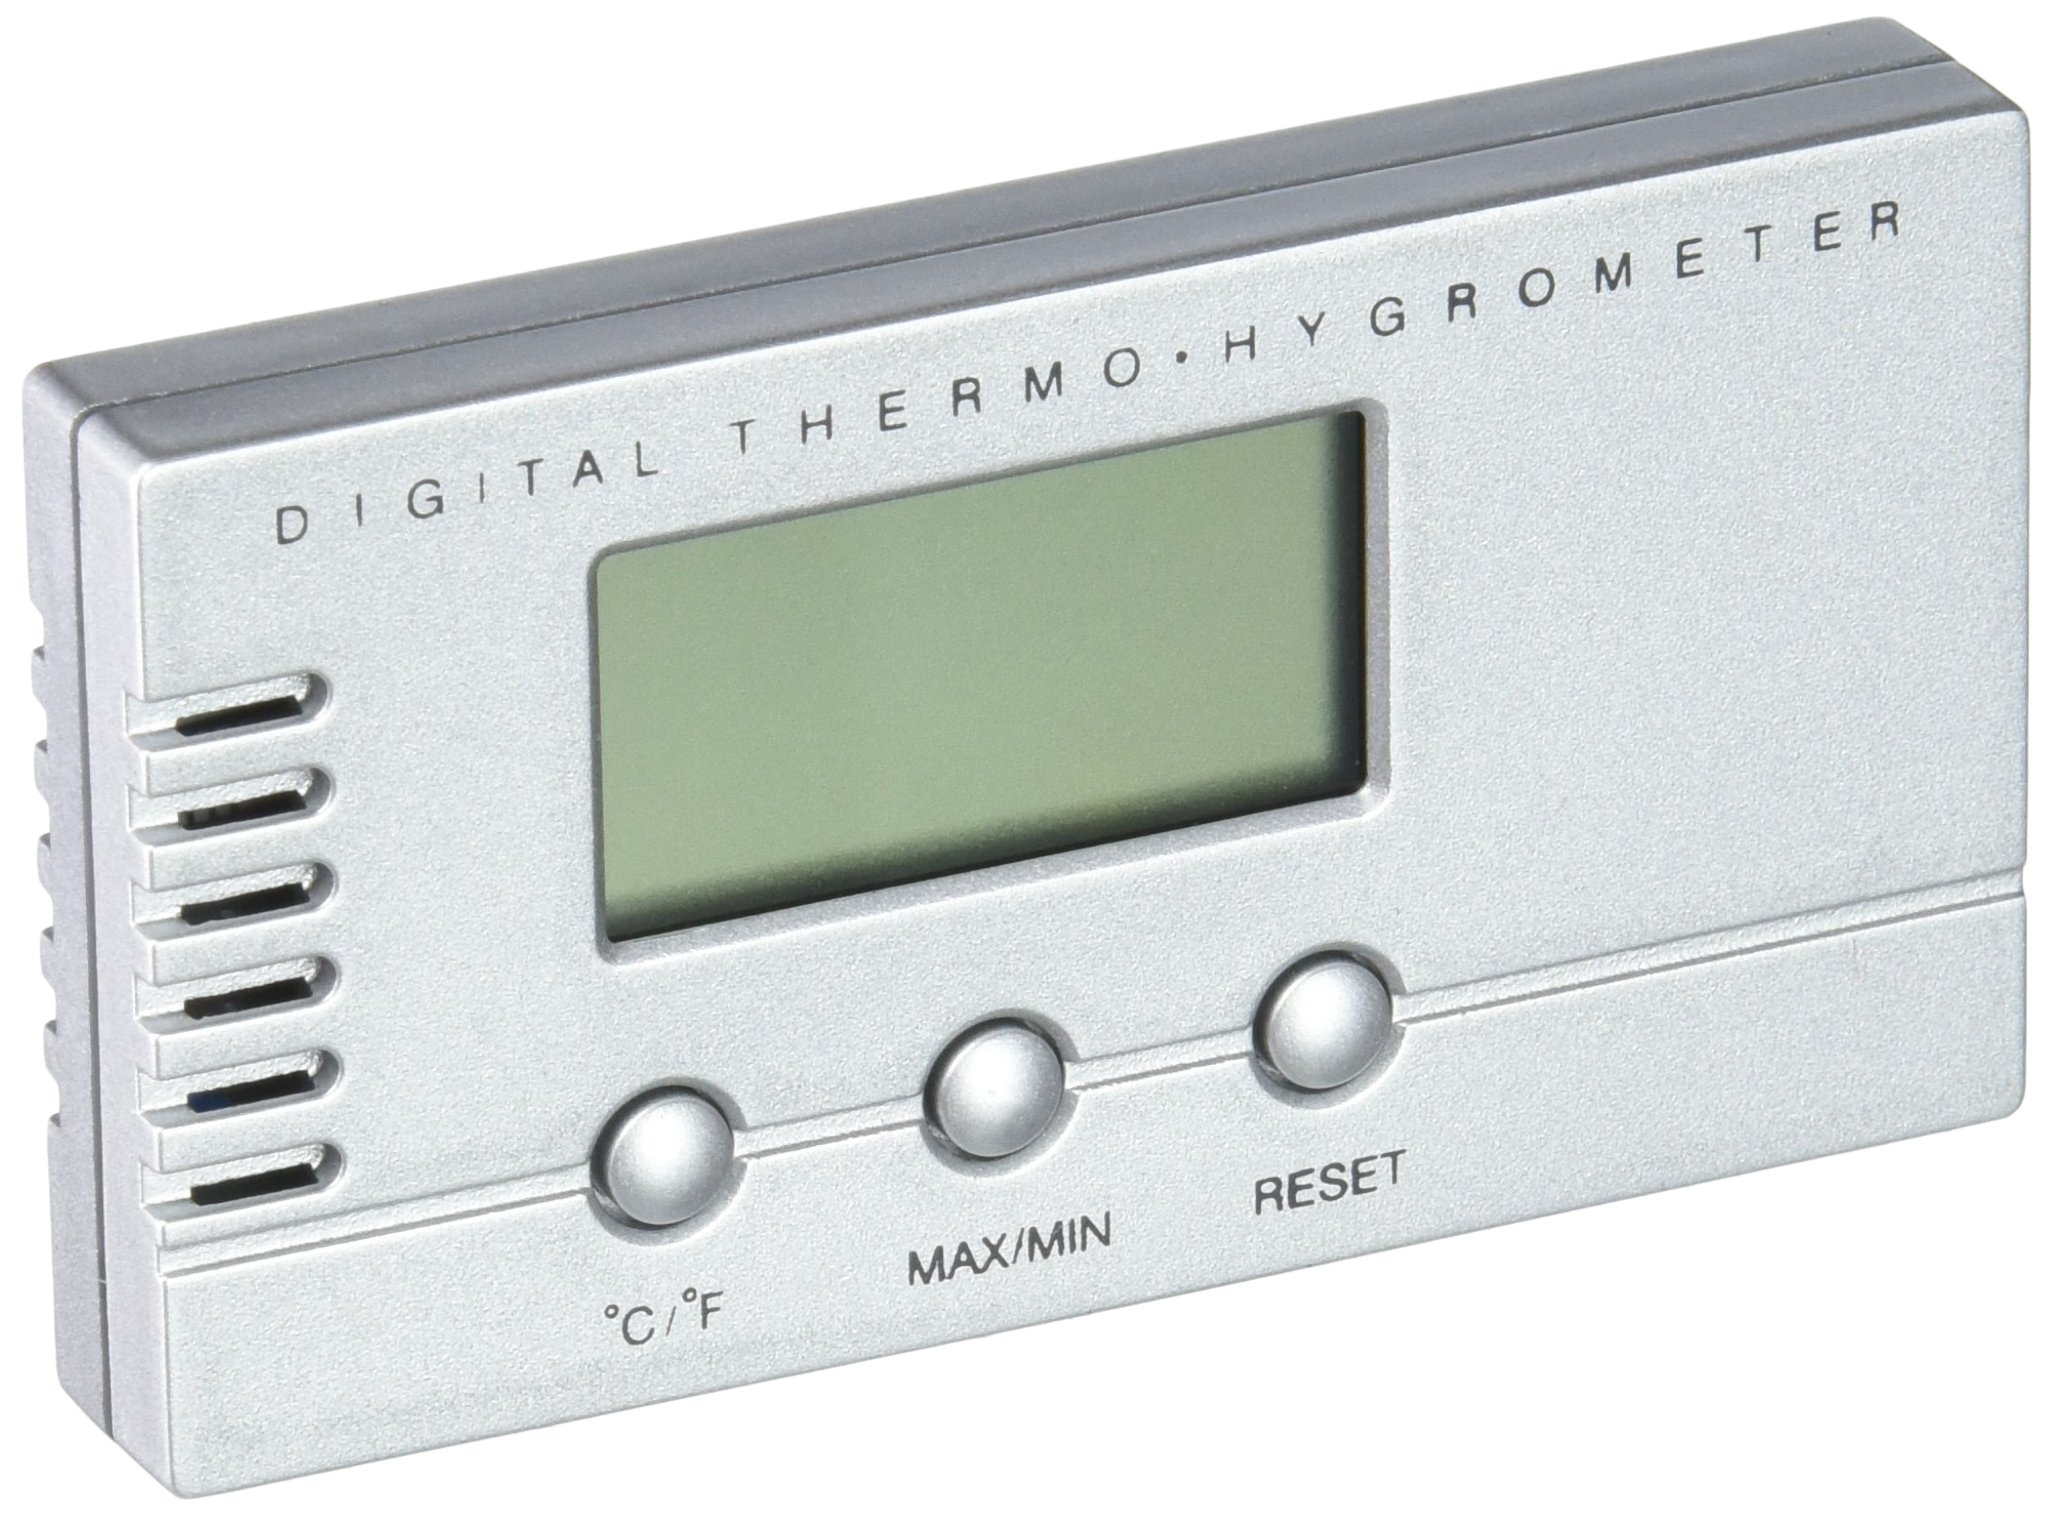 Visol Products VAC705 Silver Digital Thermometer and Hygrometer for Cigar Humidors